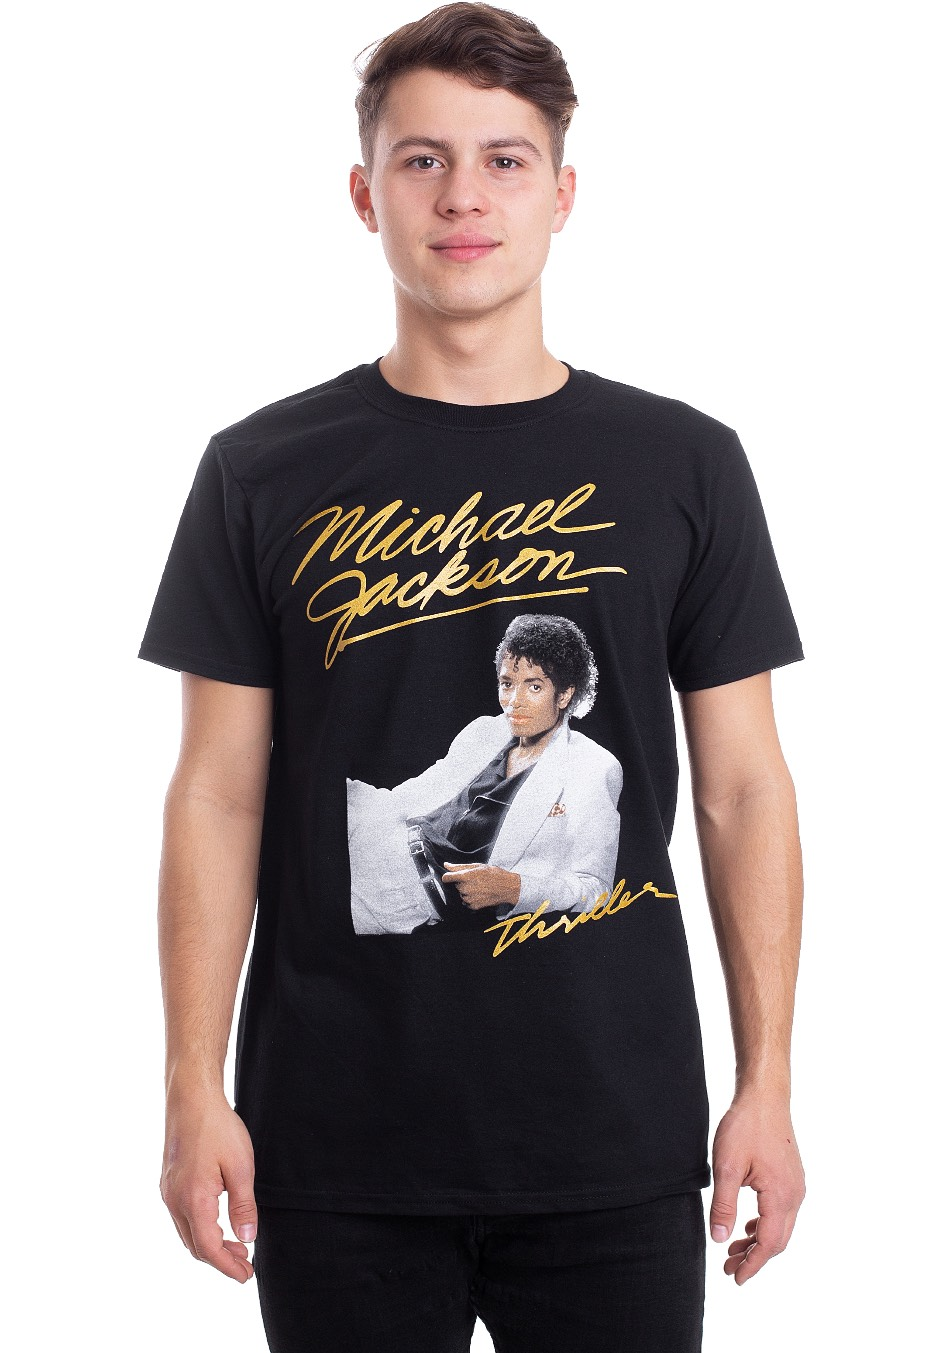 eb96771e4d99 Michael Jackson - Thriller White Suit - T-Shirt - Official Pop Merchandise  Shop - Impericon.com AU